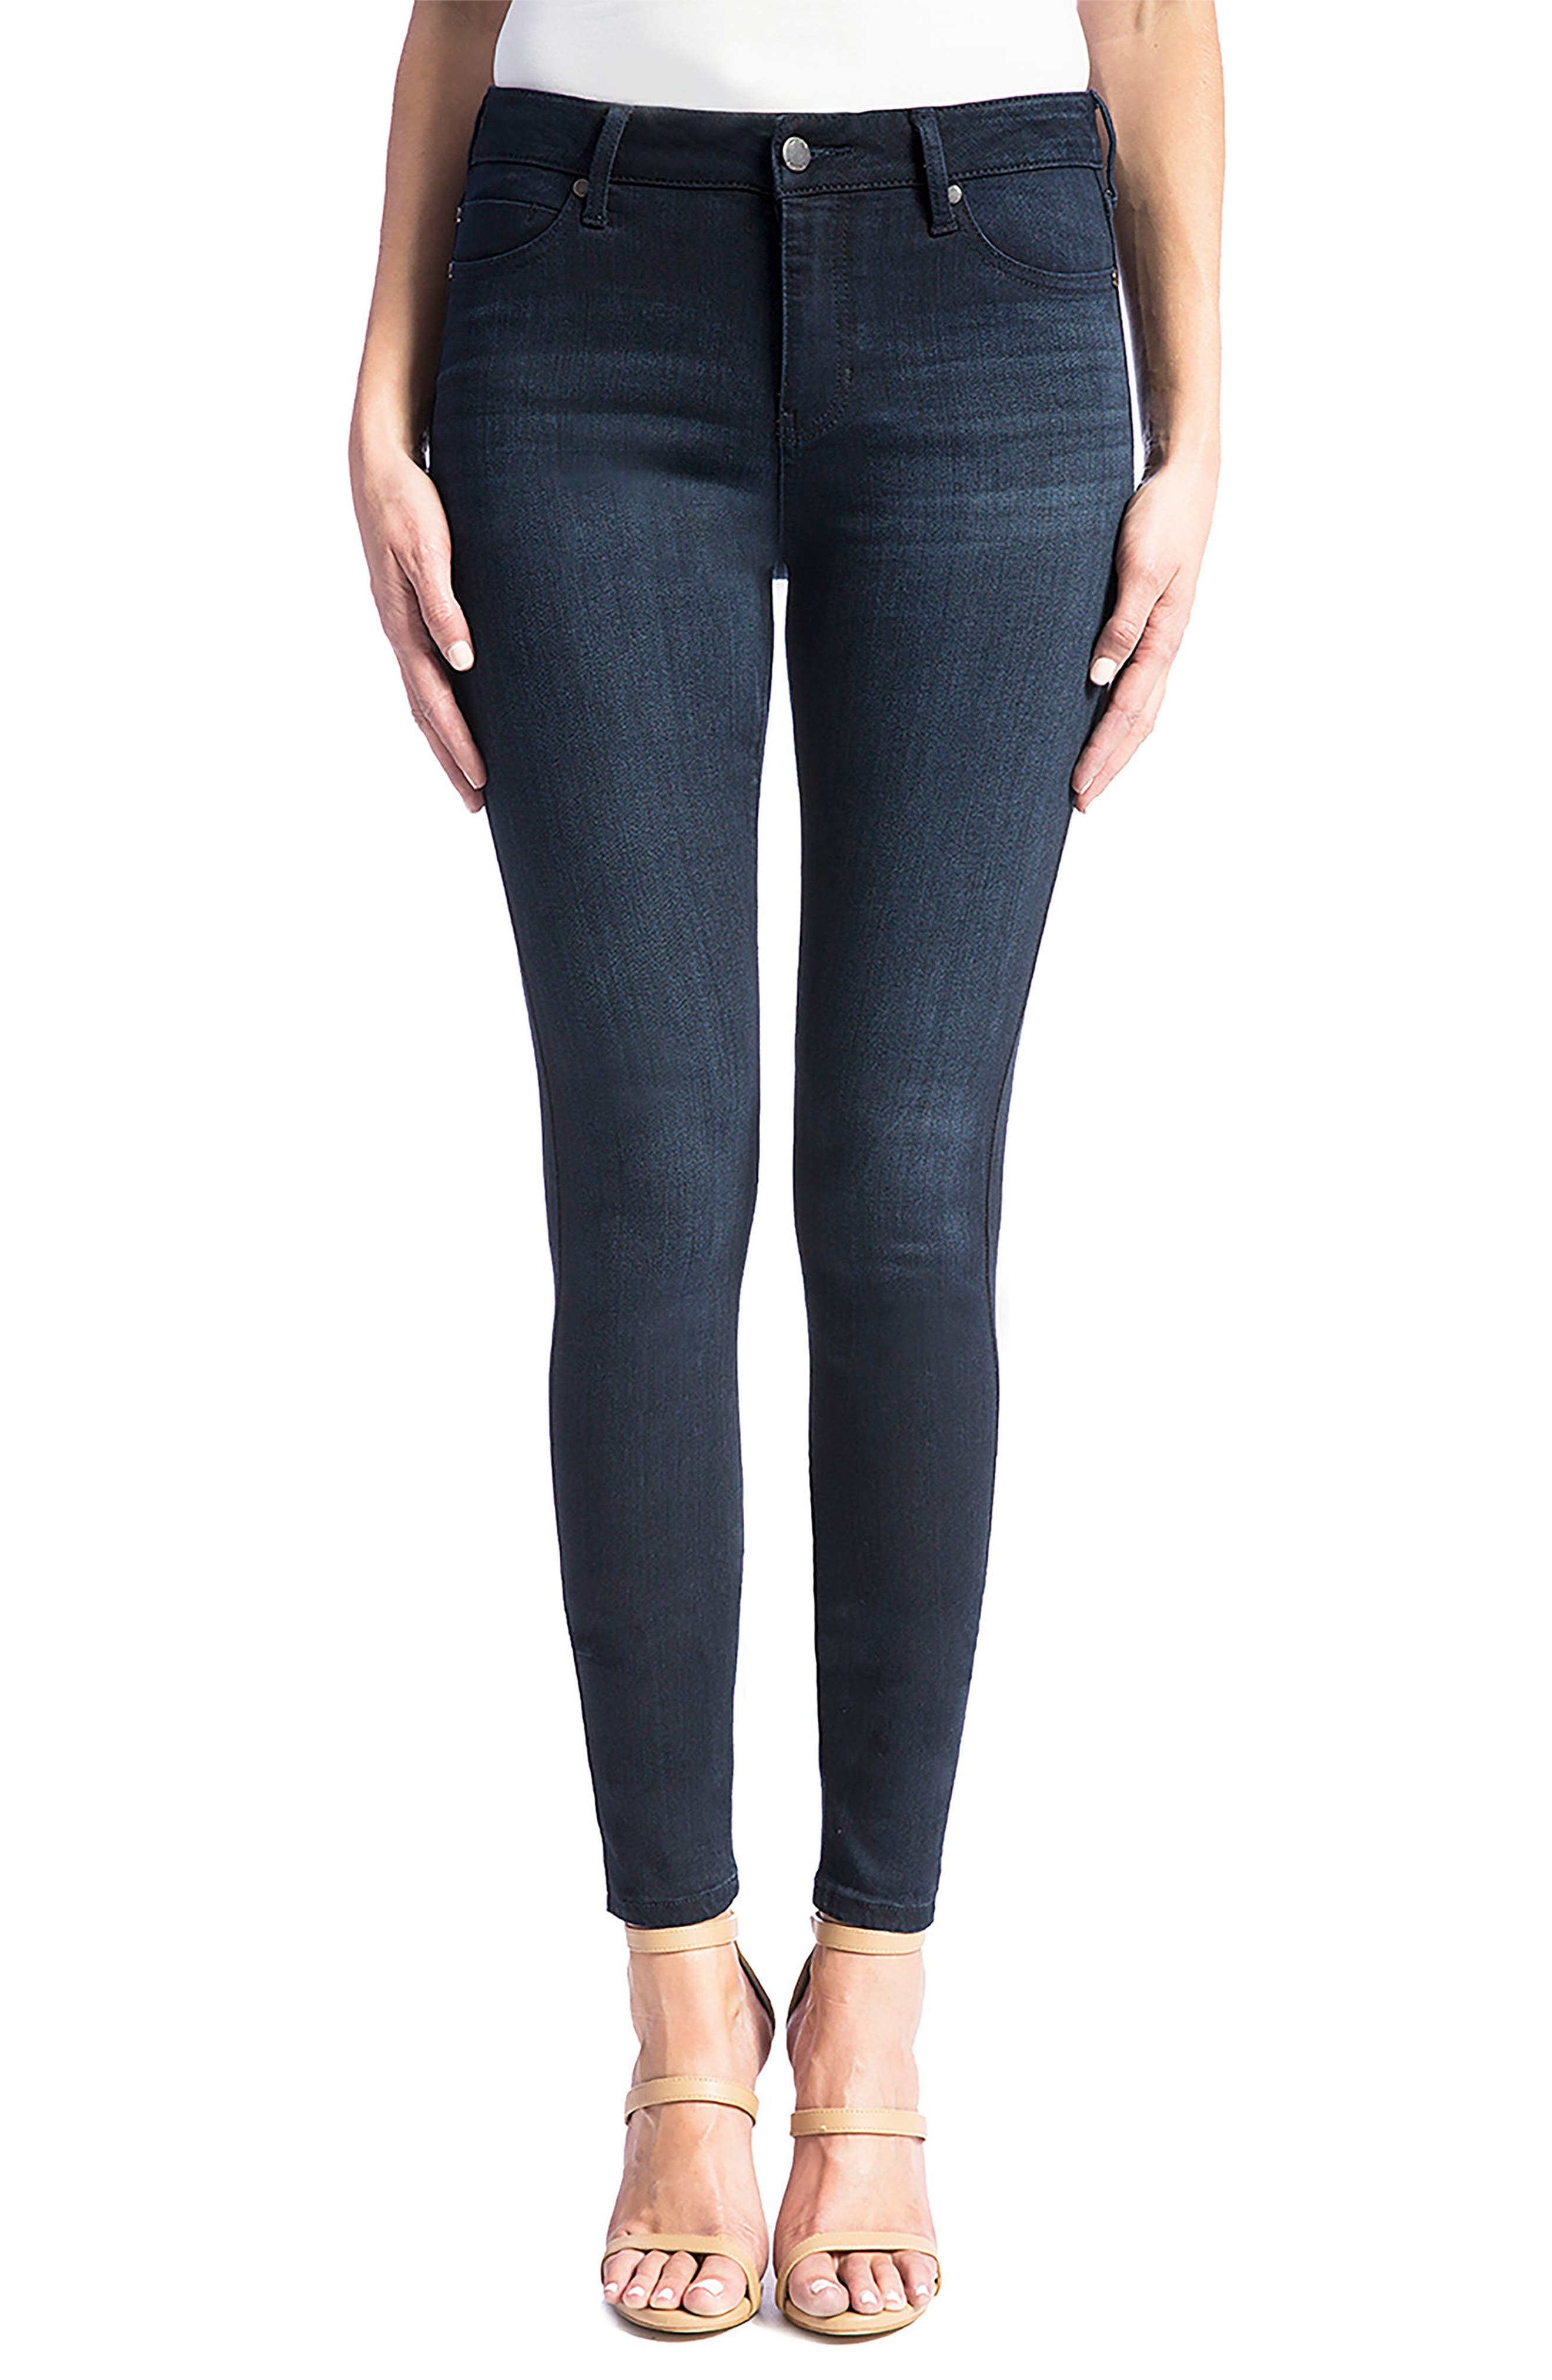 Jeans Co. Abby Stretch Skinny Jeans,                         Main,                         color, 402